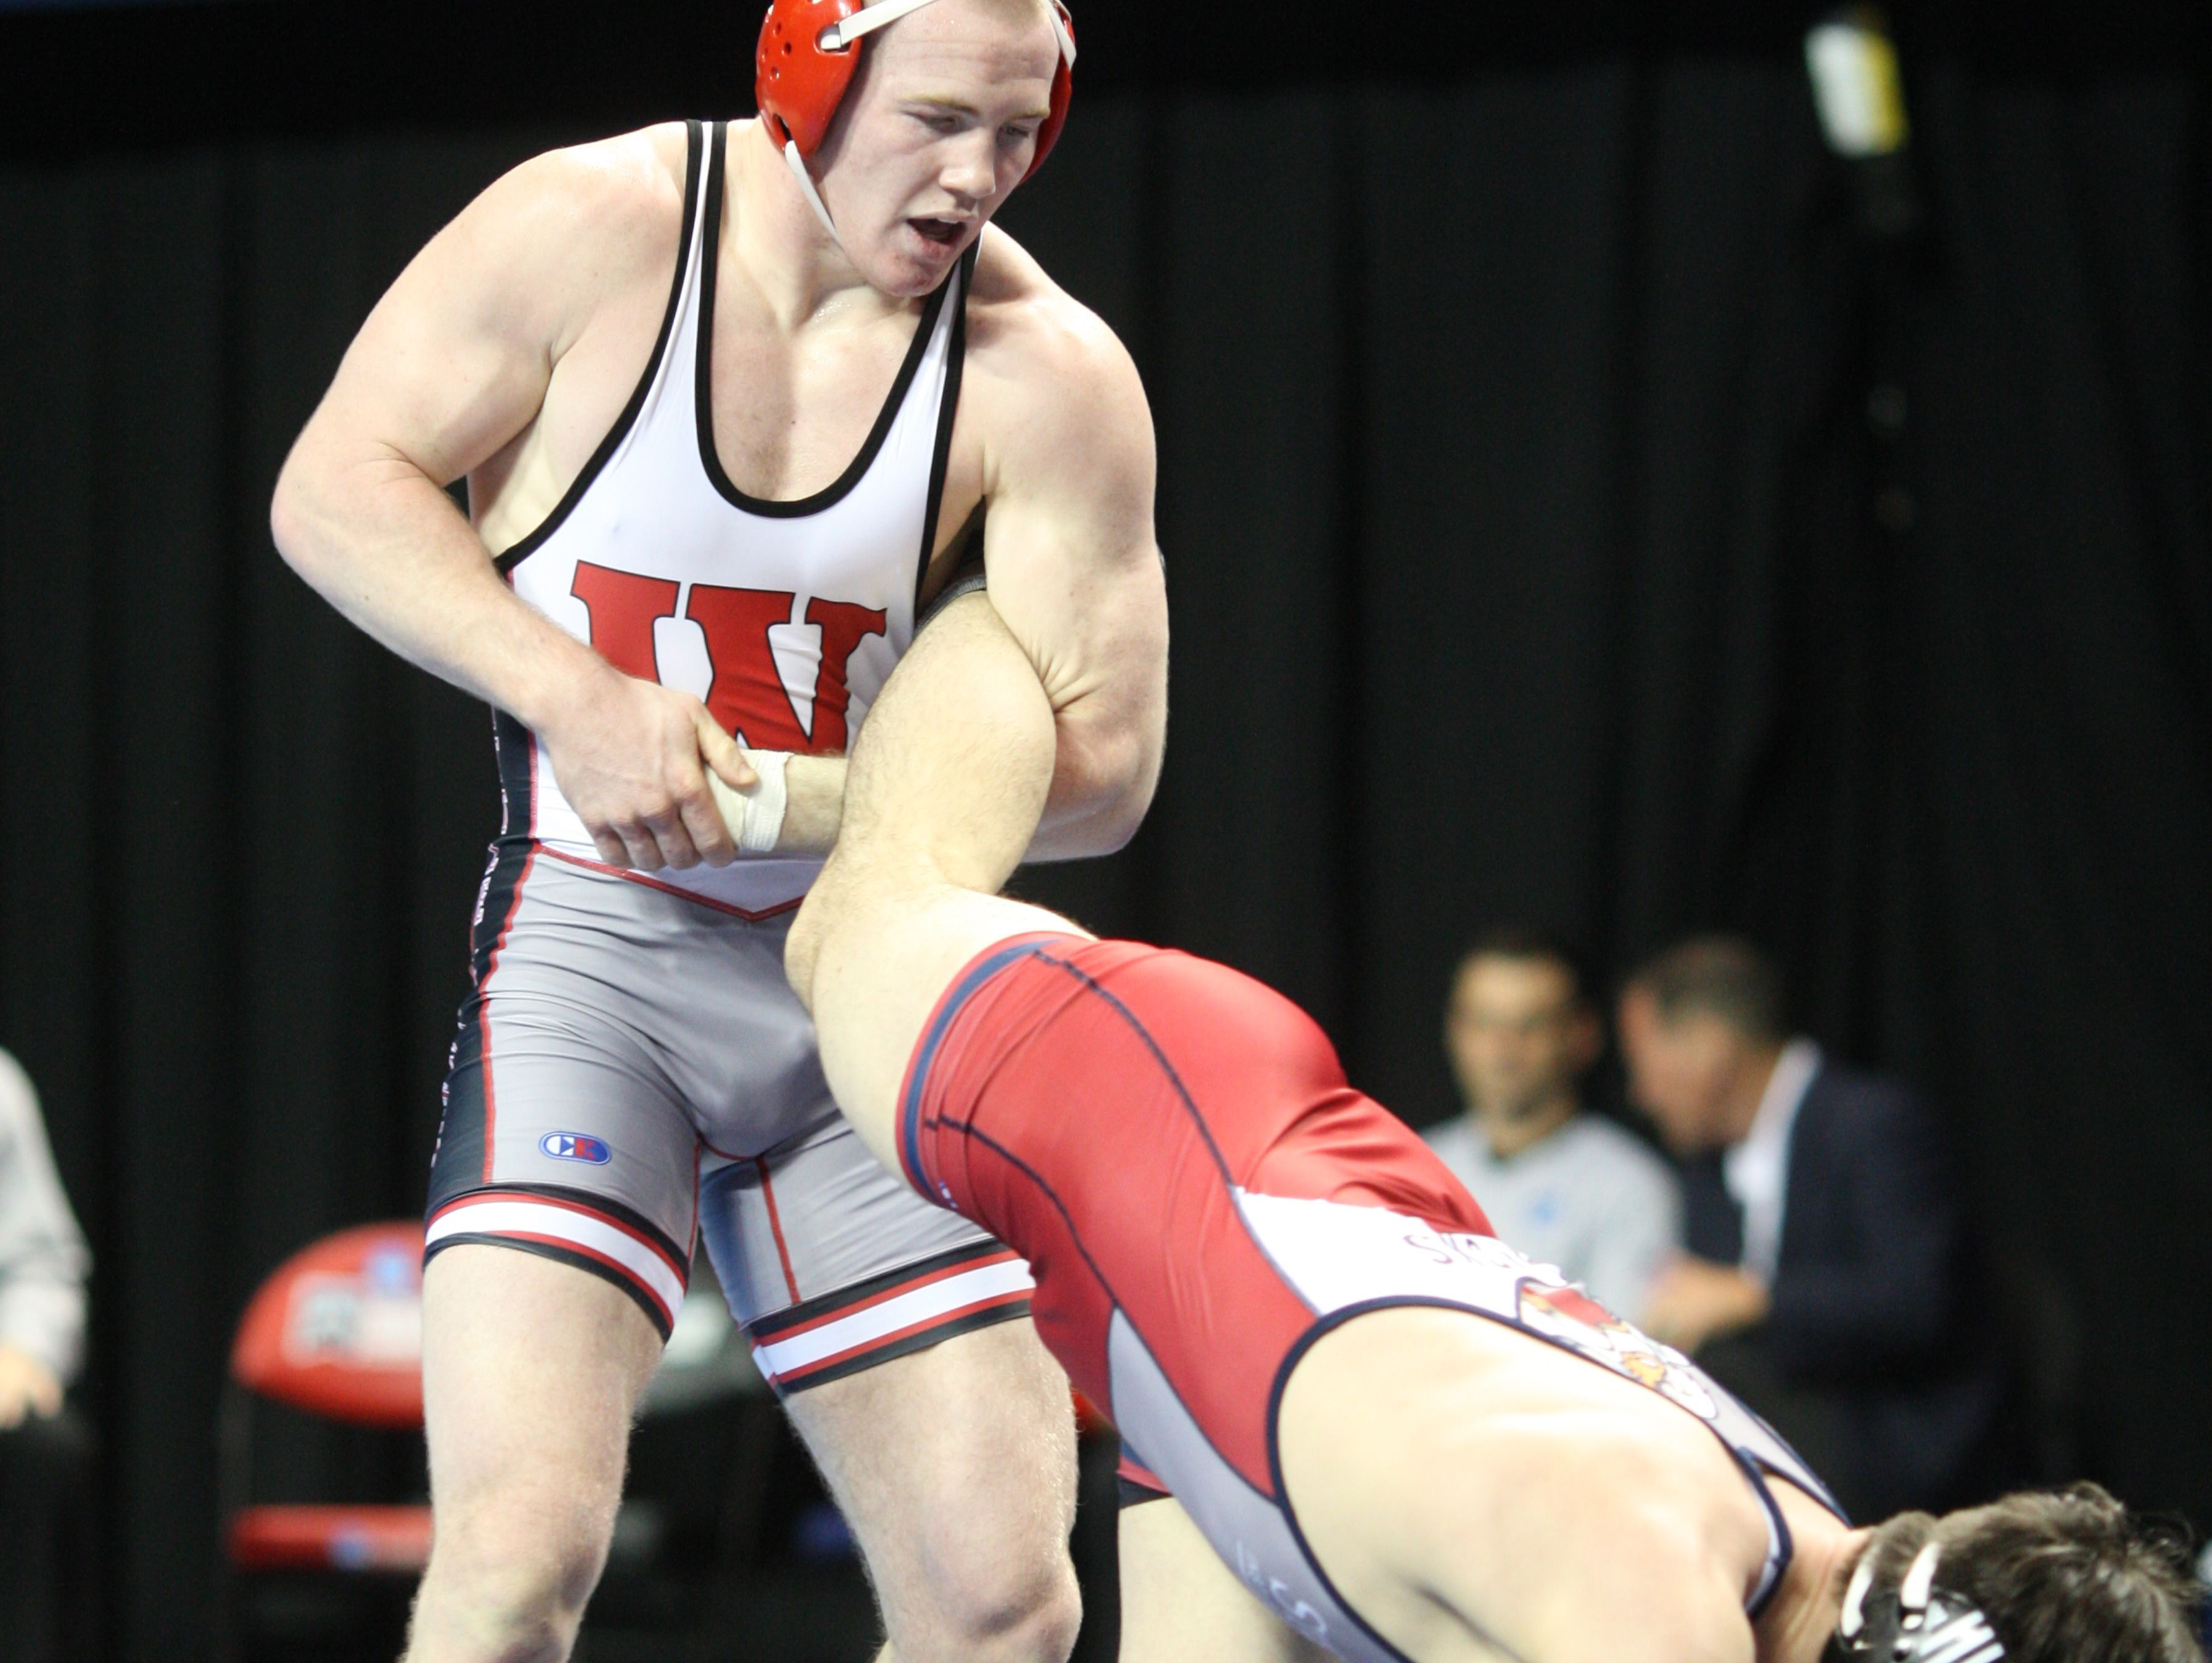 Riley Lefever of Wabash at the US Cellular Arena in Cedar Rapids Iowa at the 2016 NCAA Division III National Championship on March 11, 2016.